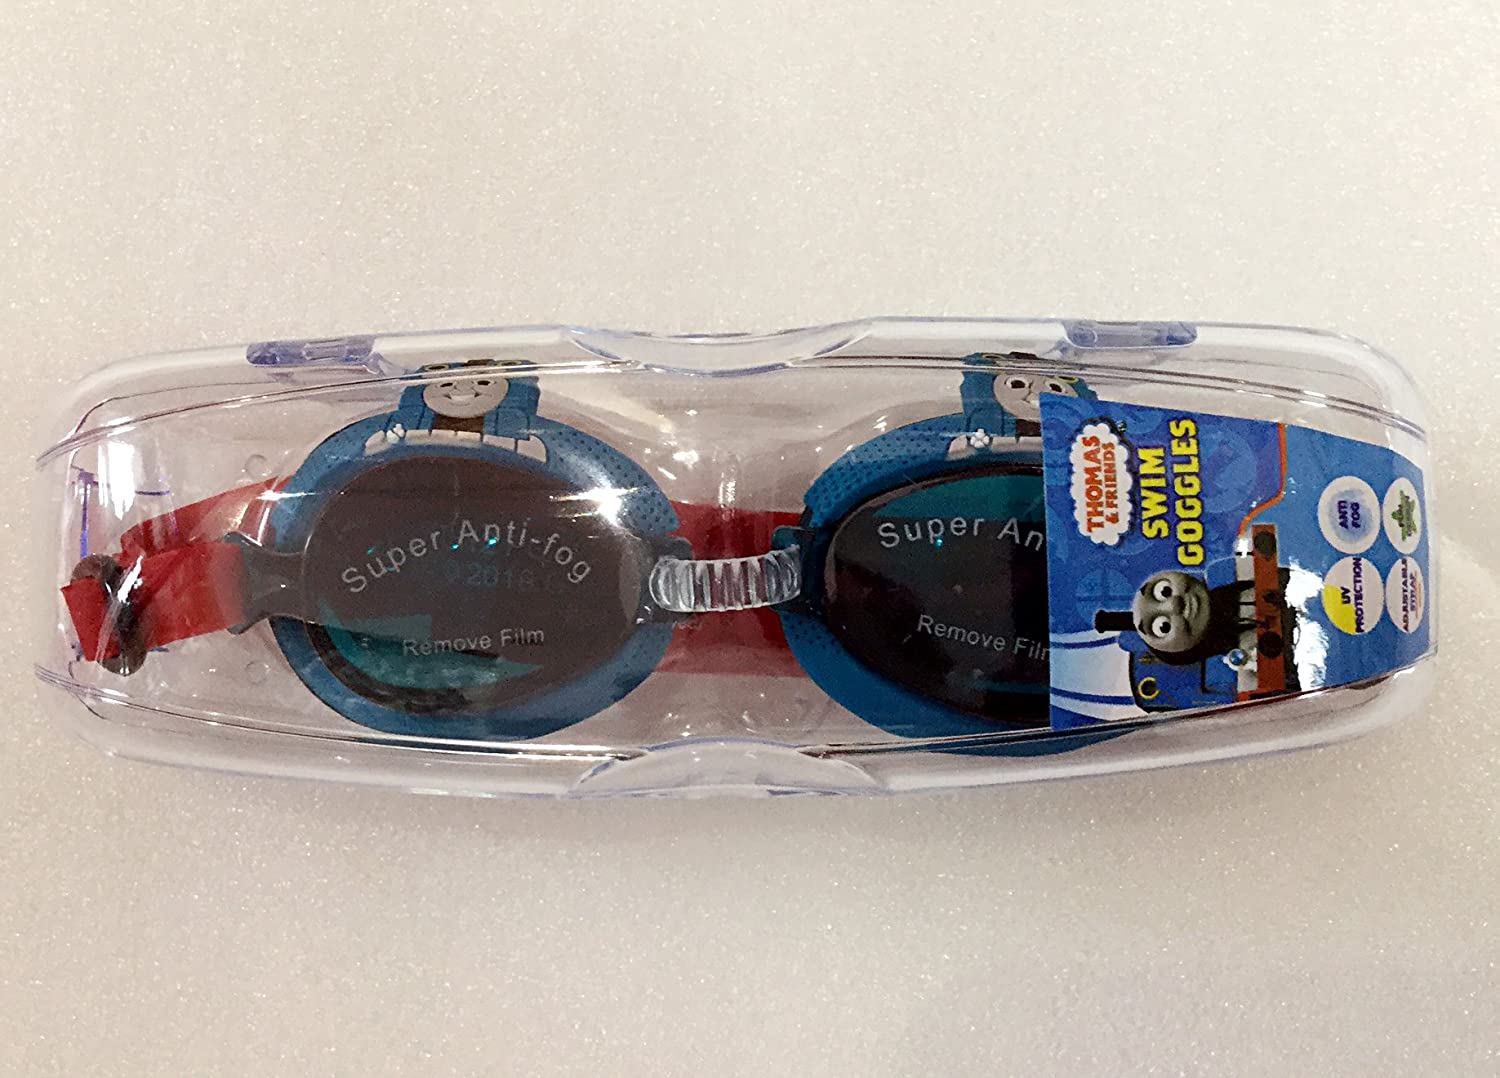 36cab7126cb3 Amazon.com   Thomas and friends swim goggles w case   Sports   Outdoors